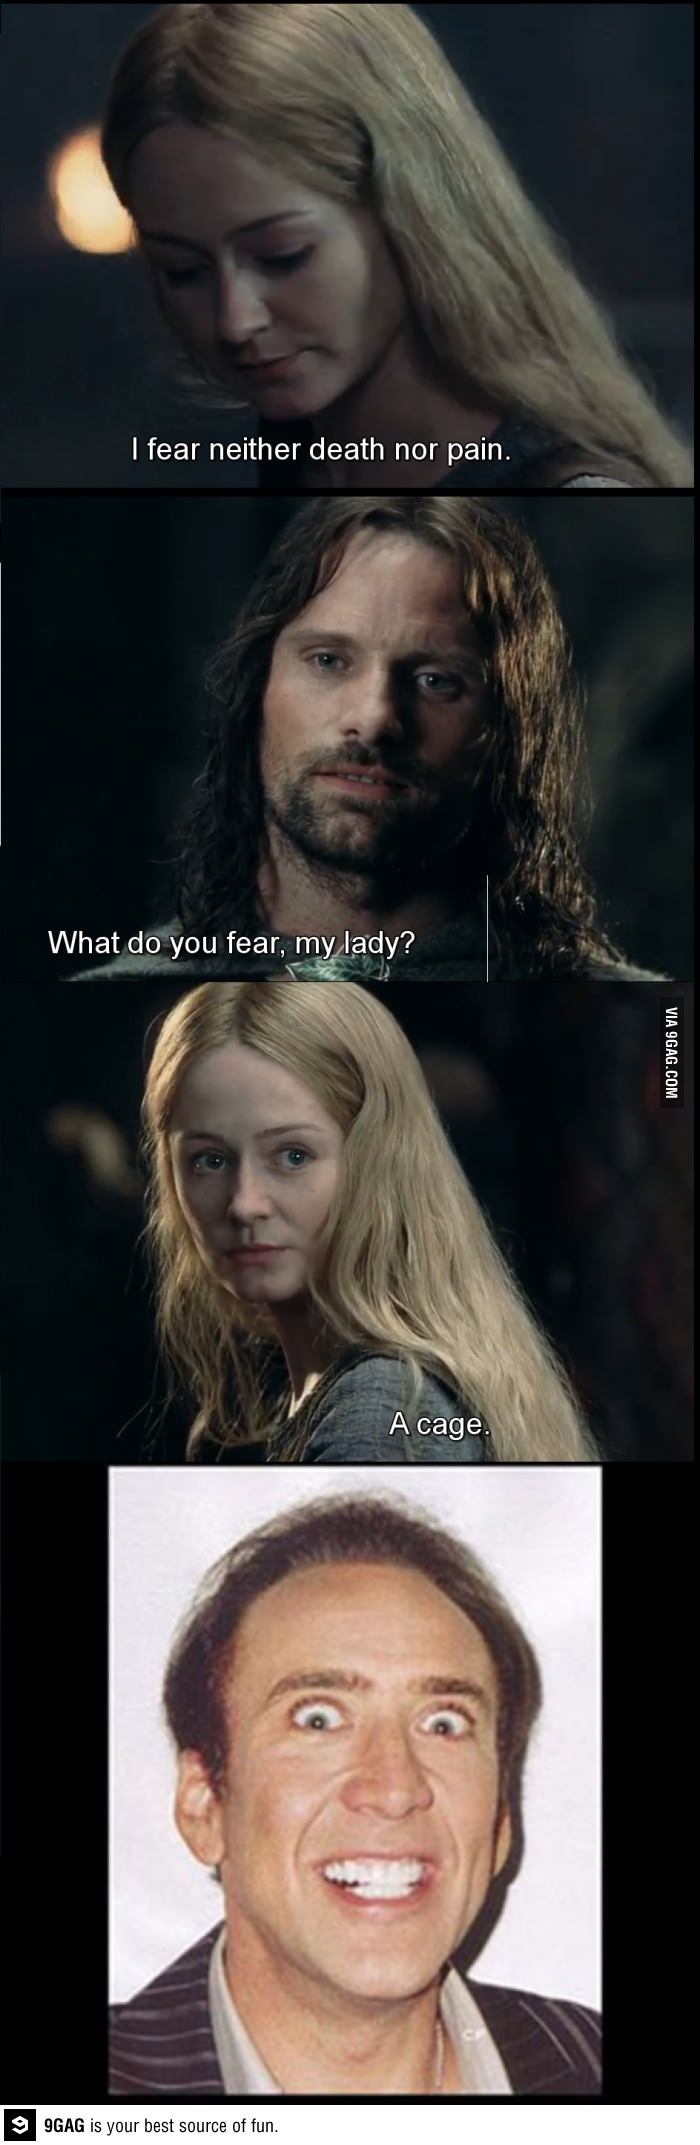 CAN'T BREATHE.  Especially funny since Nicholas Cage was Peter Jackson's original choice for Aragorn.